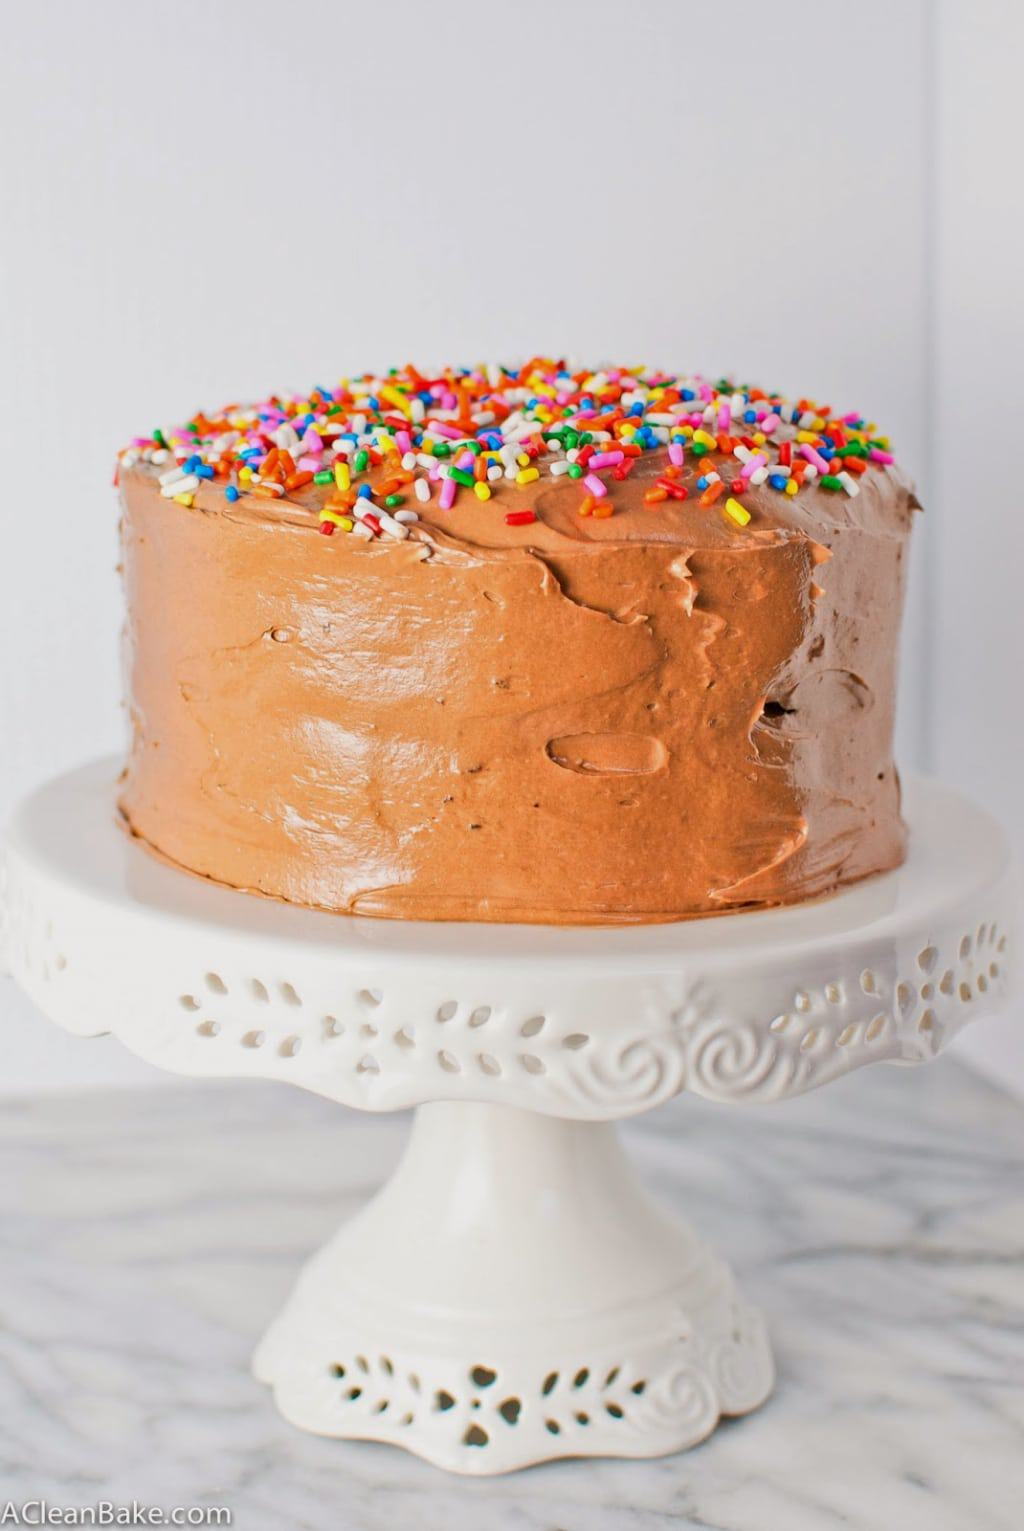 Secretly healthy gluten-free layer cake. You'll never know it's gluten-free!